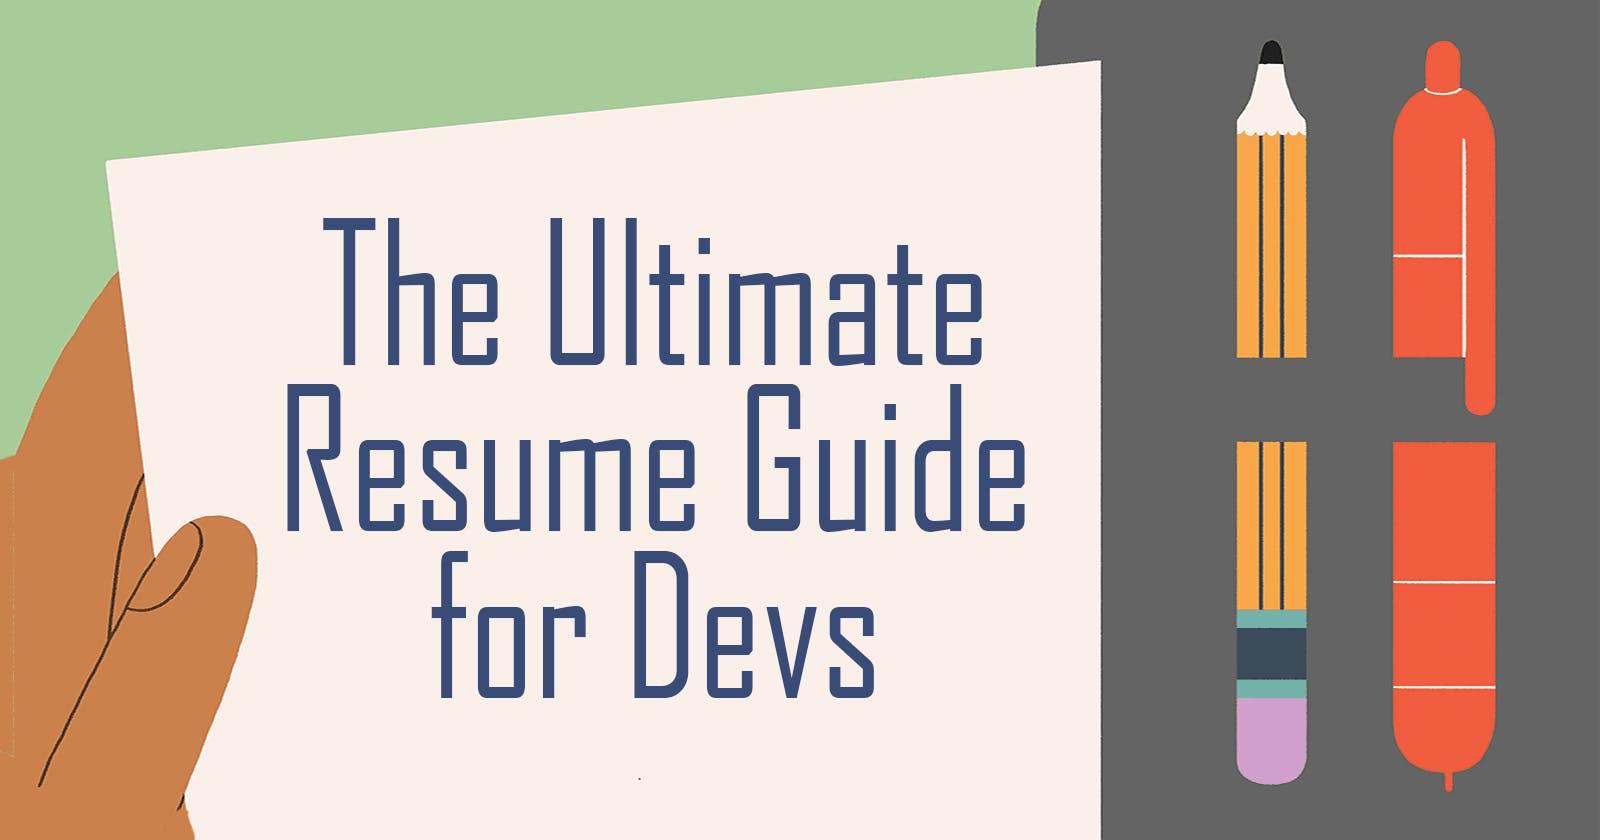 The Ultimate Resume Guide for Developers